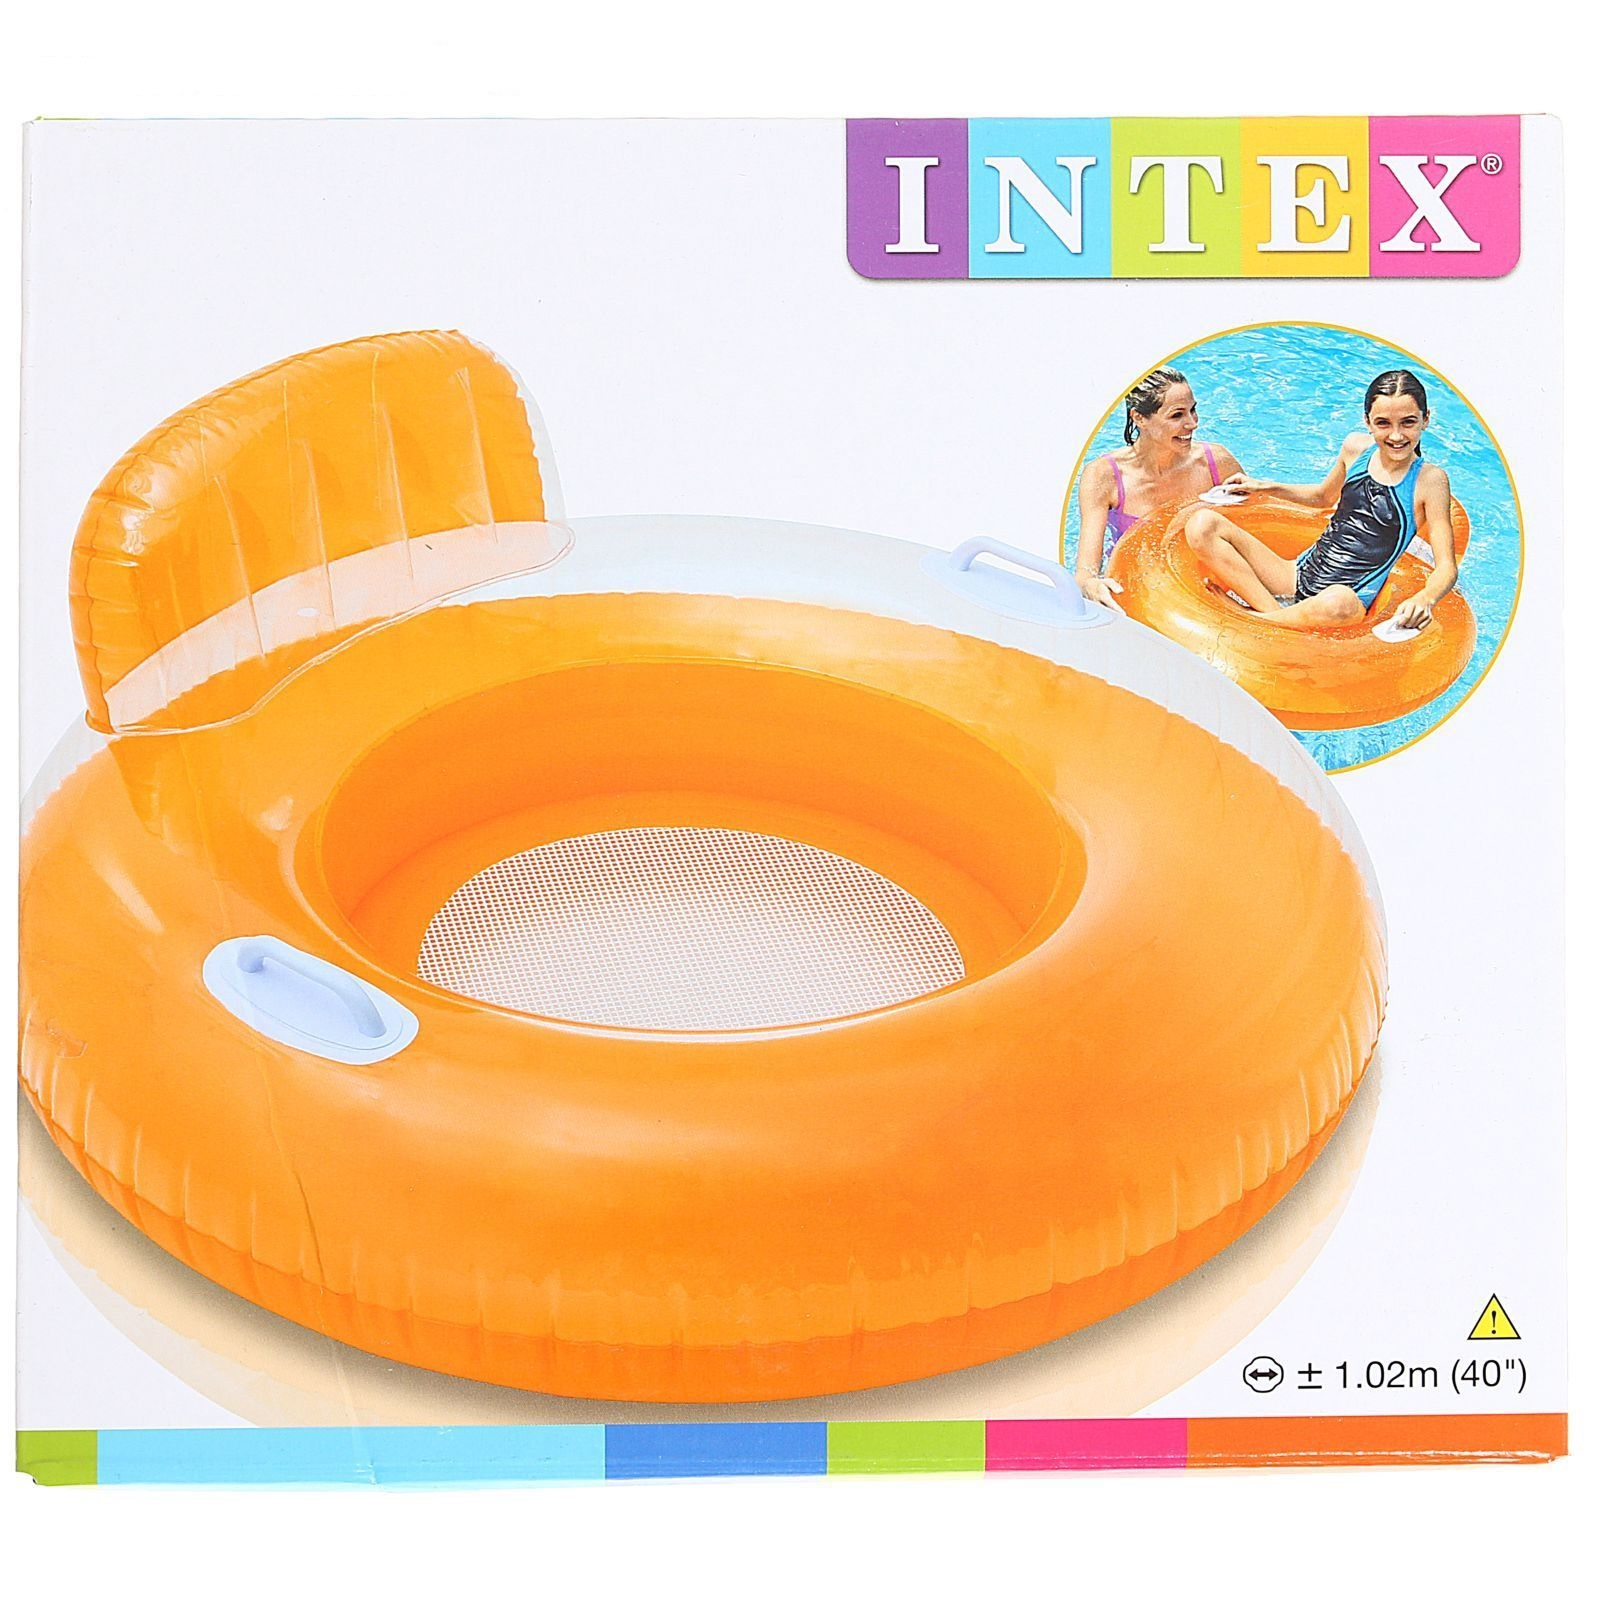 ~/Content/images/Urunler/Intex_56512NP_-_Candy_Color_Lounges.jpg